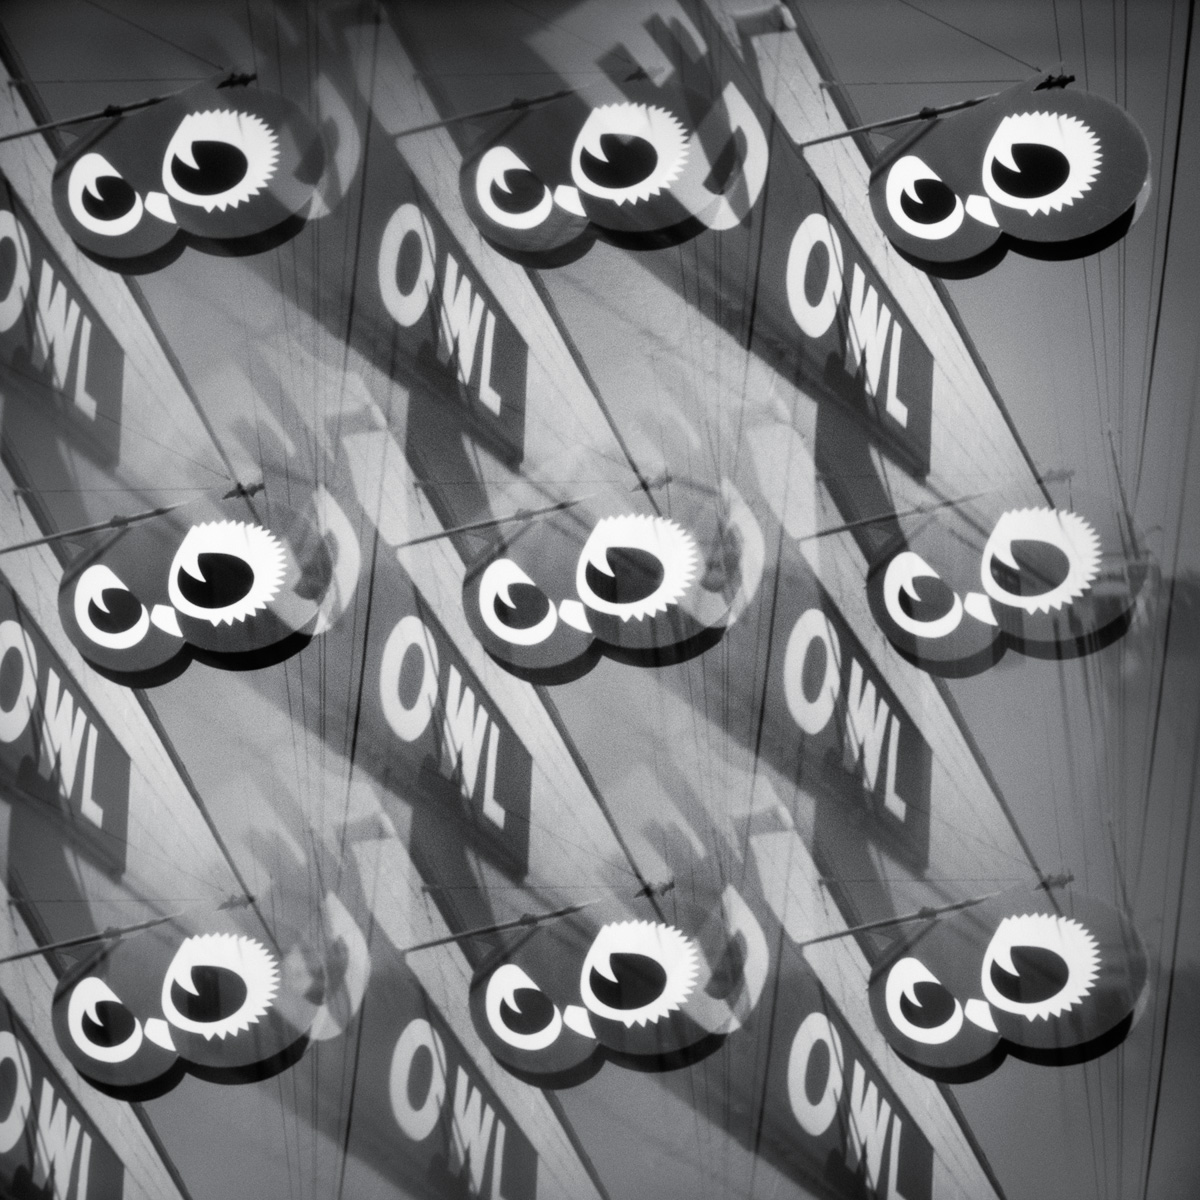 Red Owls - pinhole camera photograph